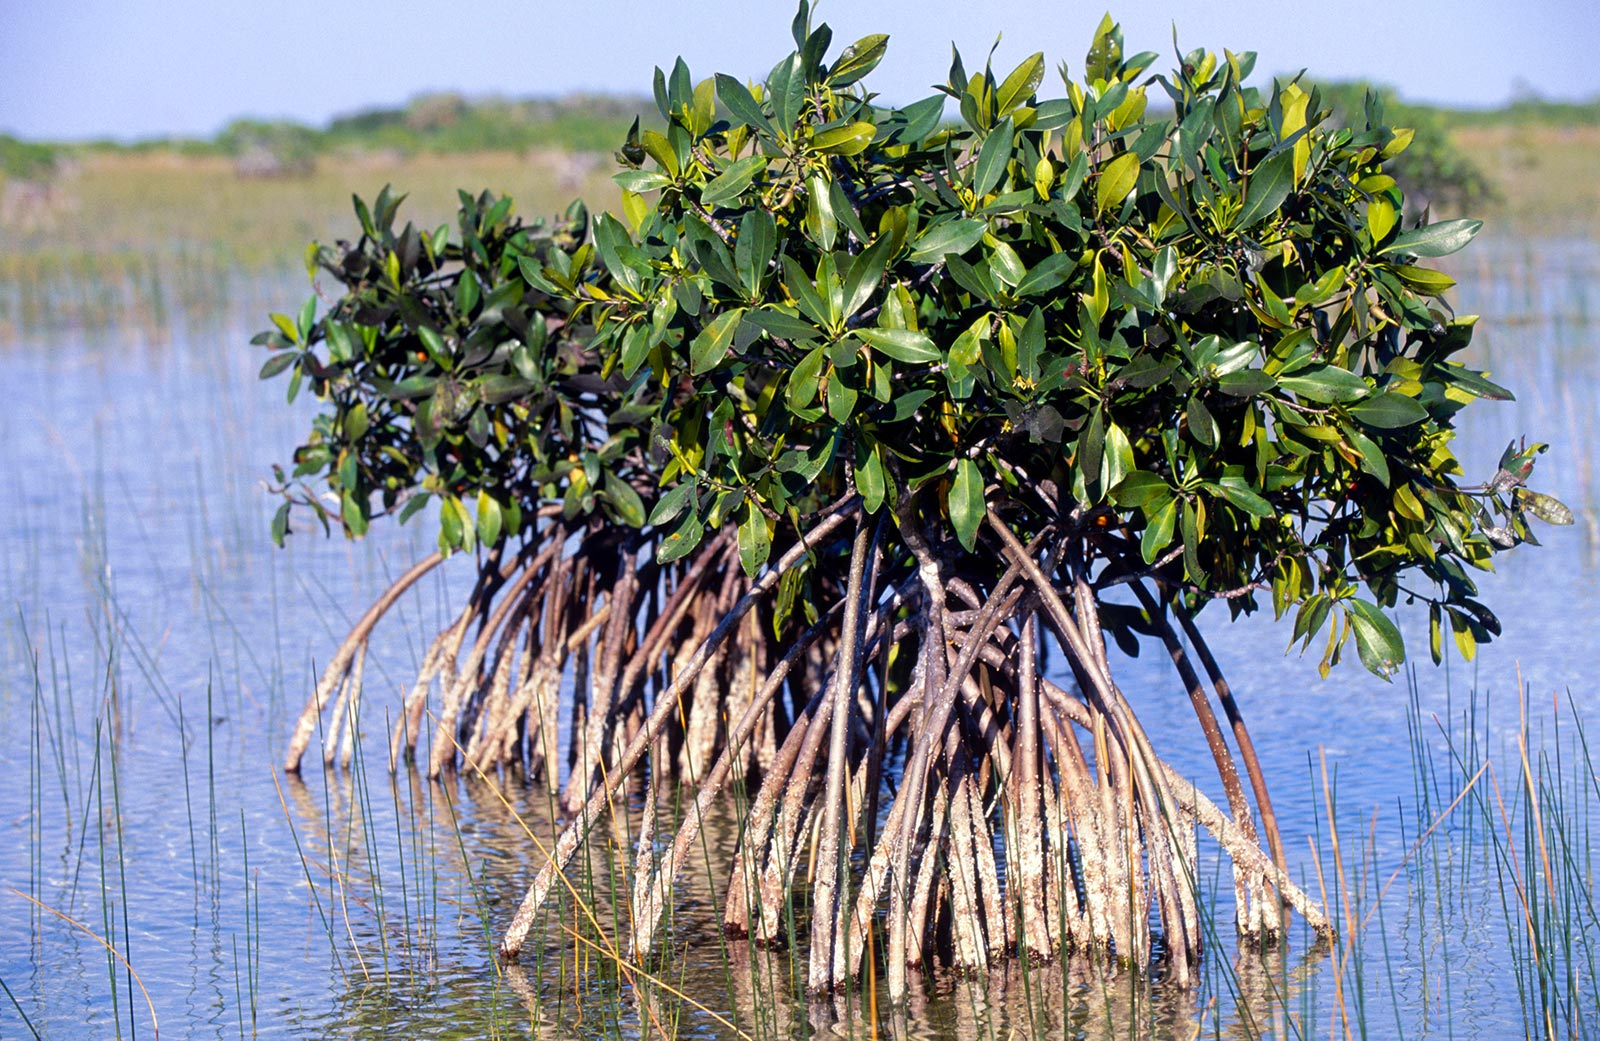 Mangrove tree with many roots showing above water